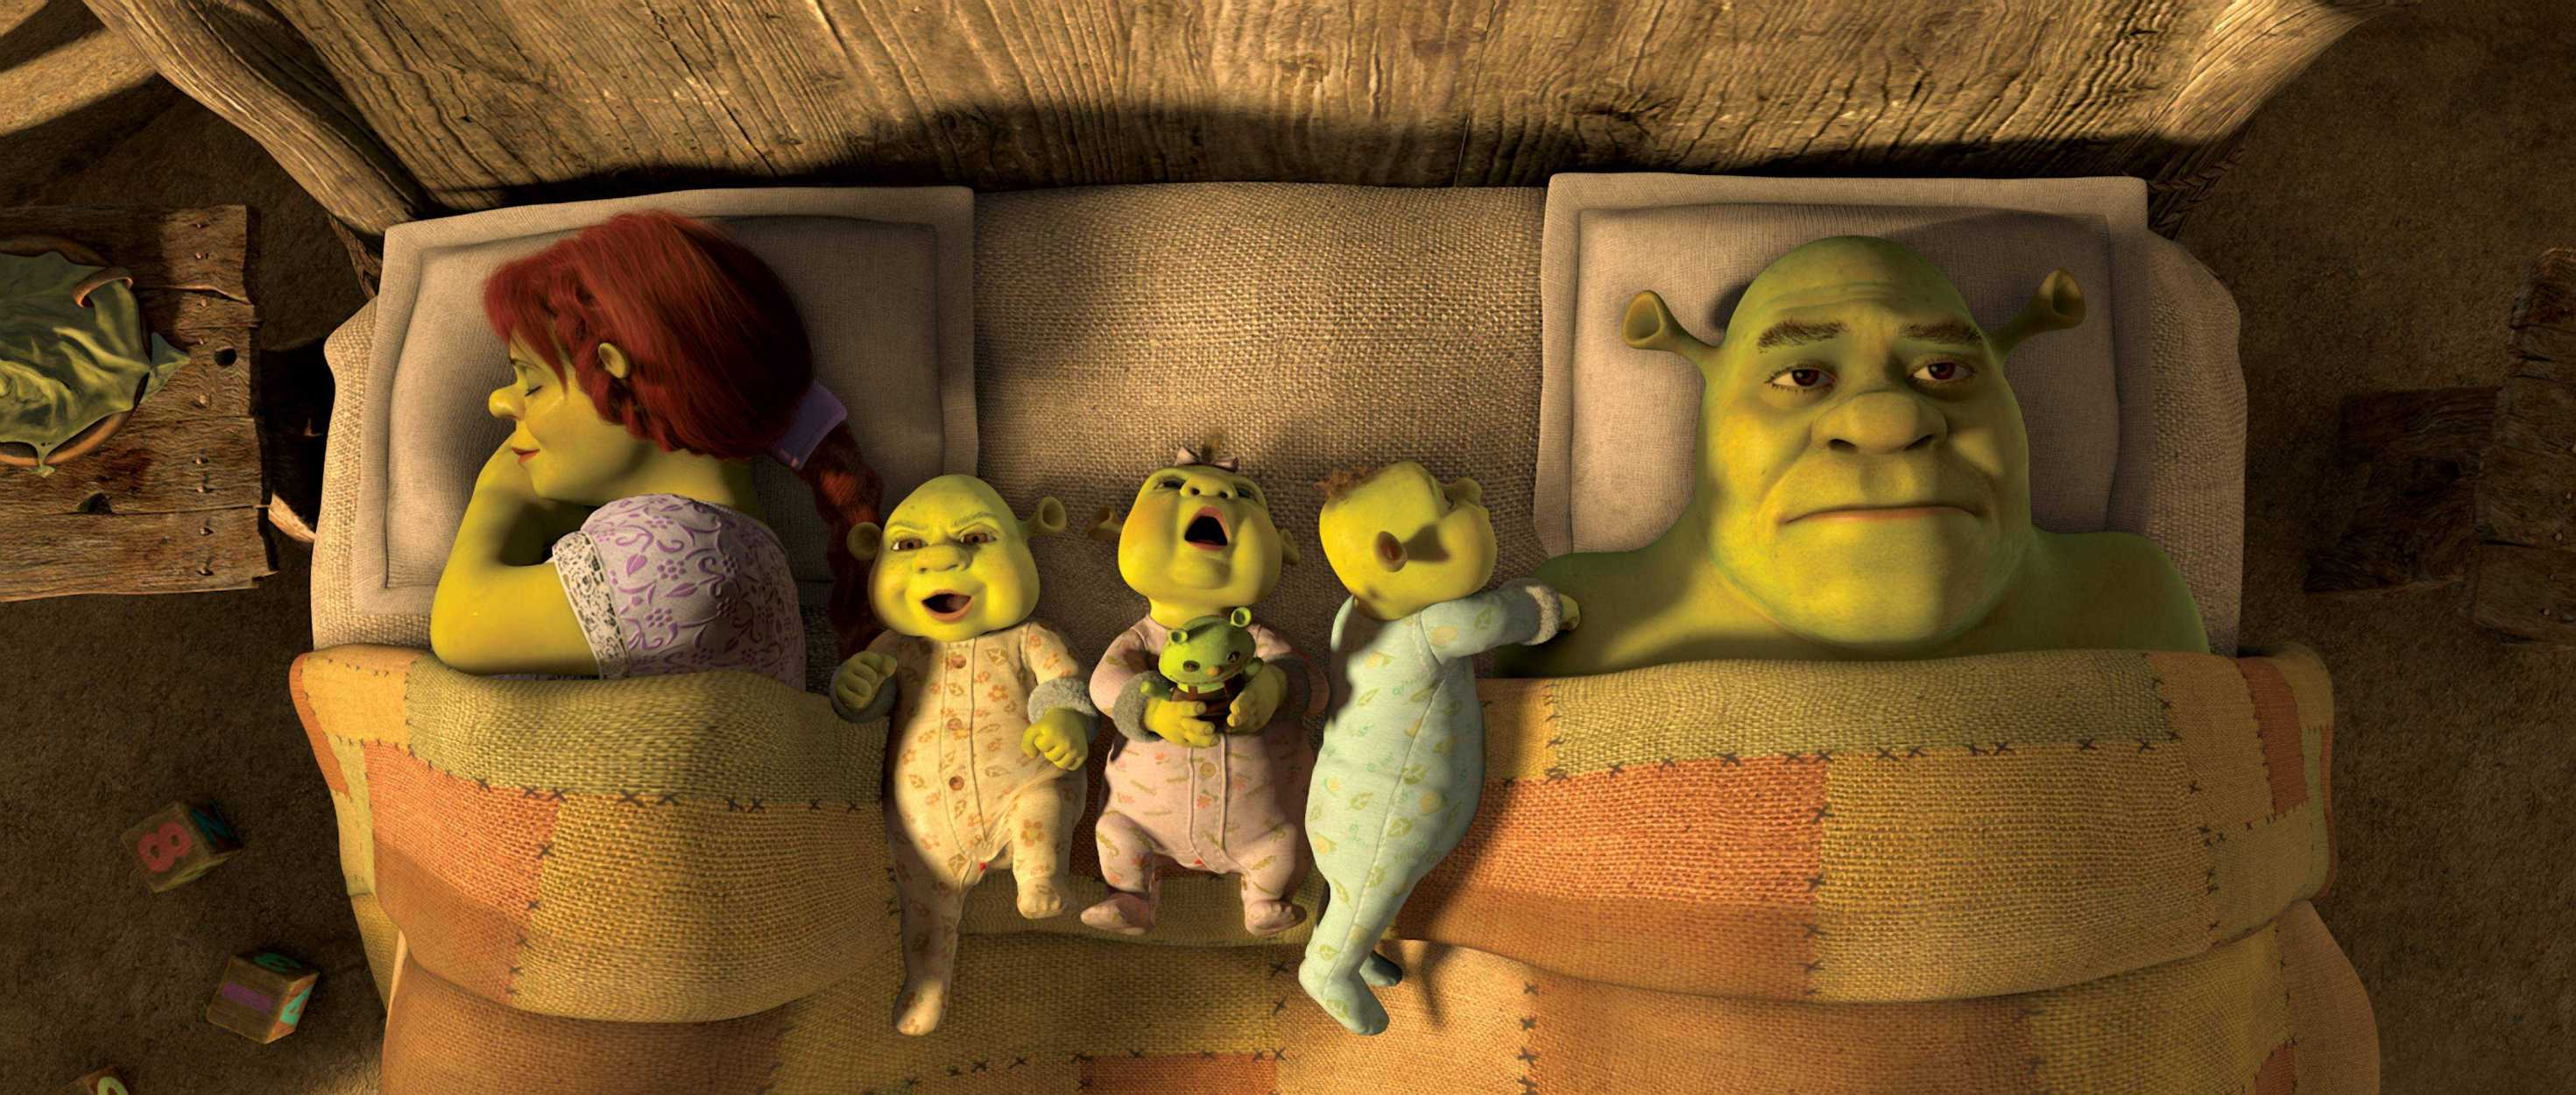 2010 shrek forever after